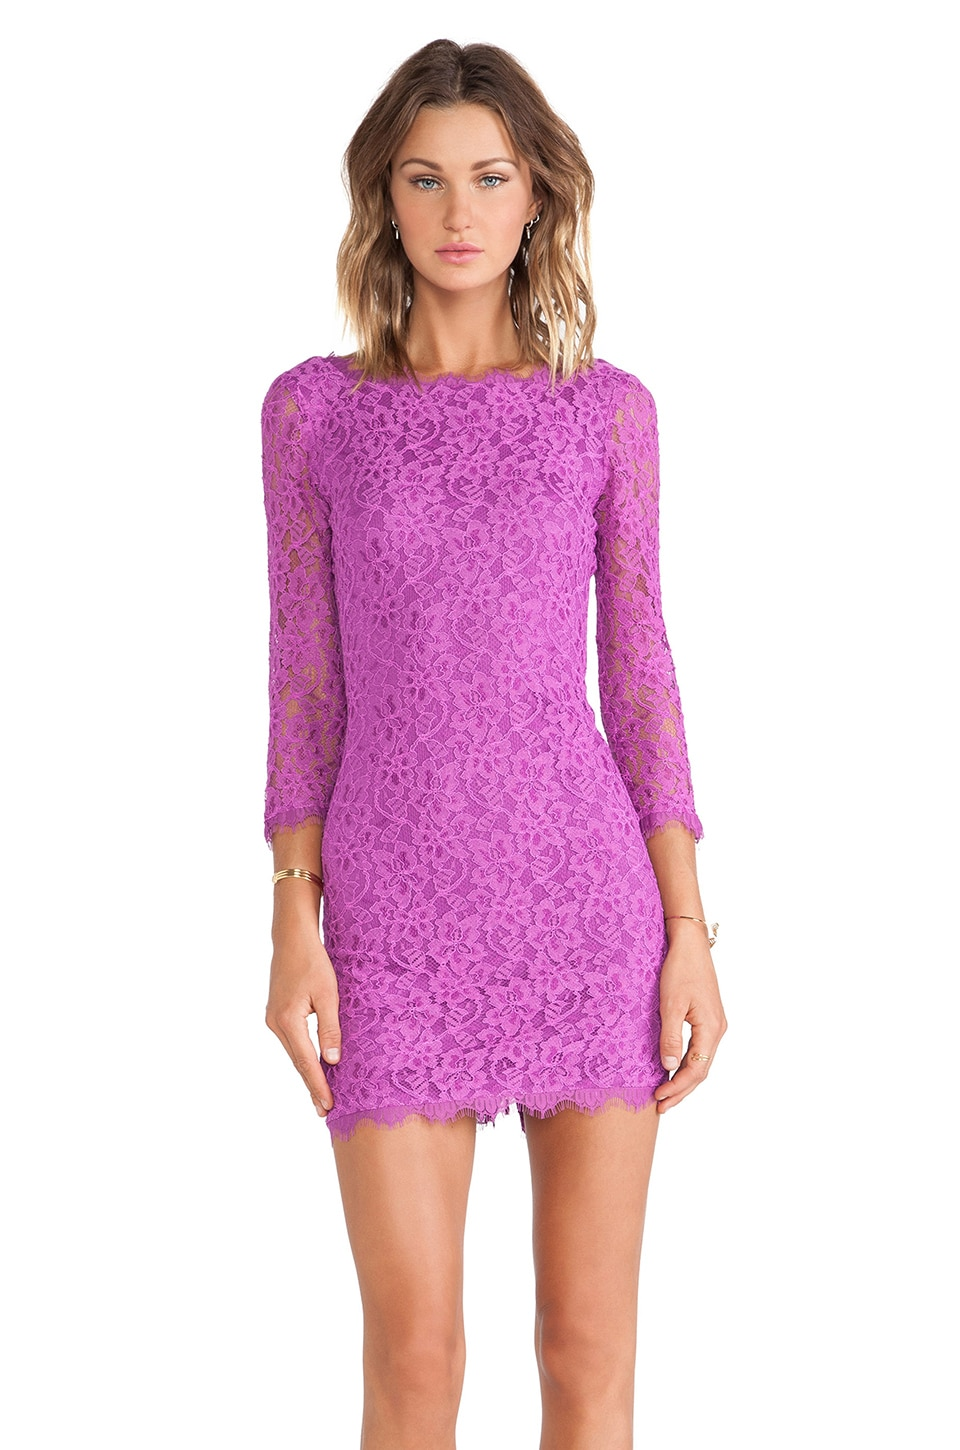 Diane von Furstenberg Zarita Lace Dress in Soft Iris